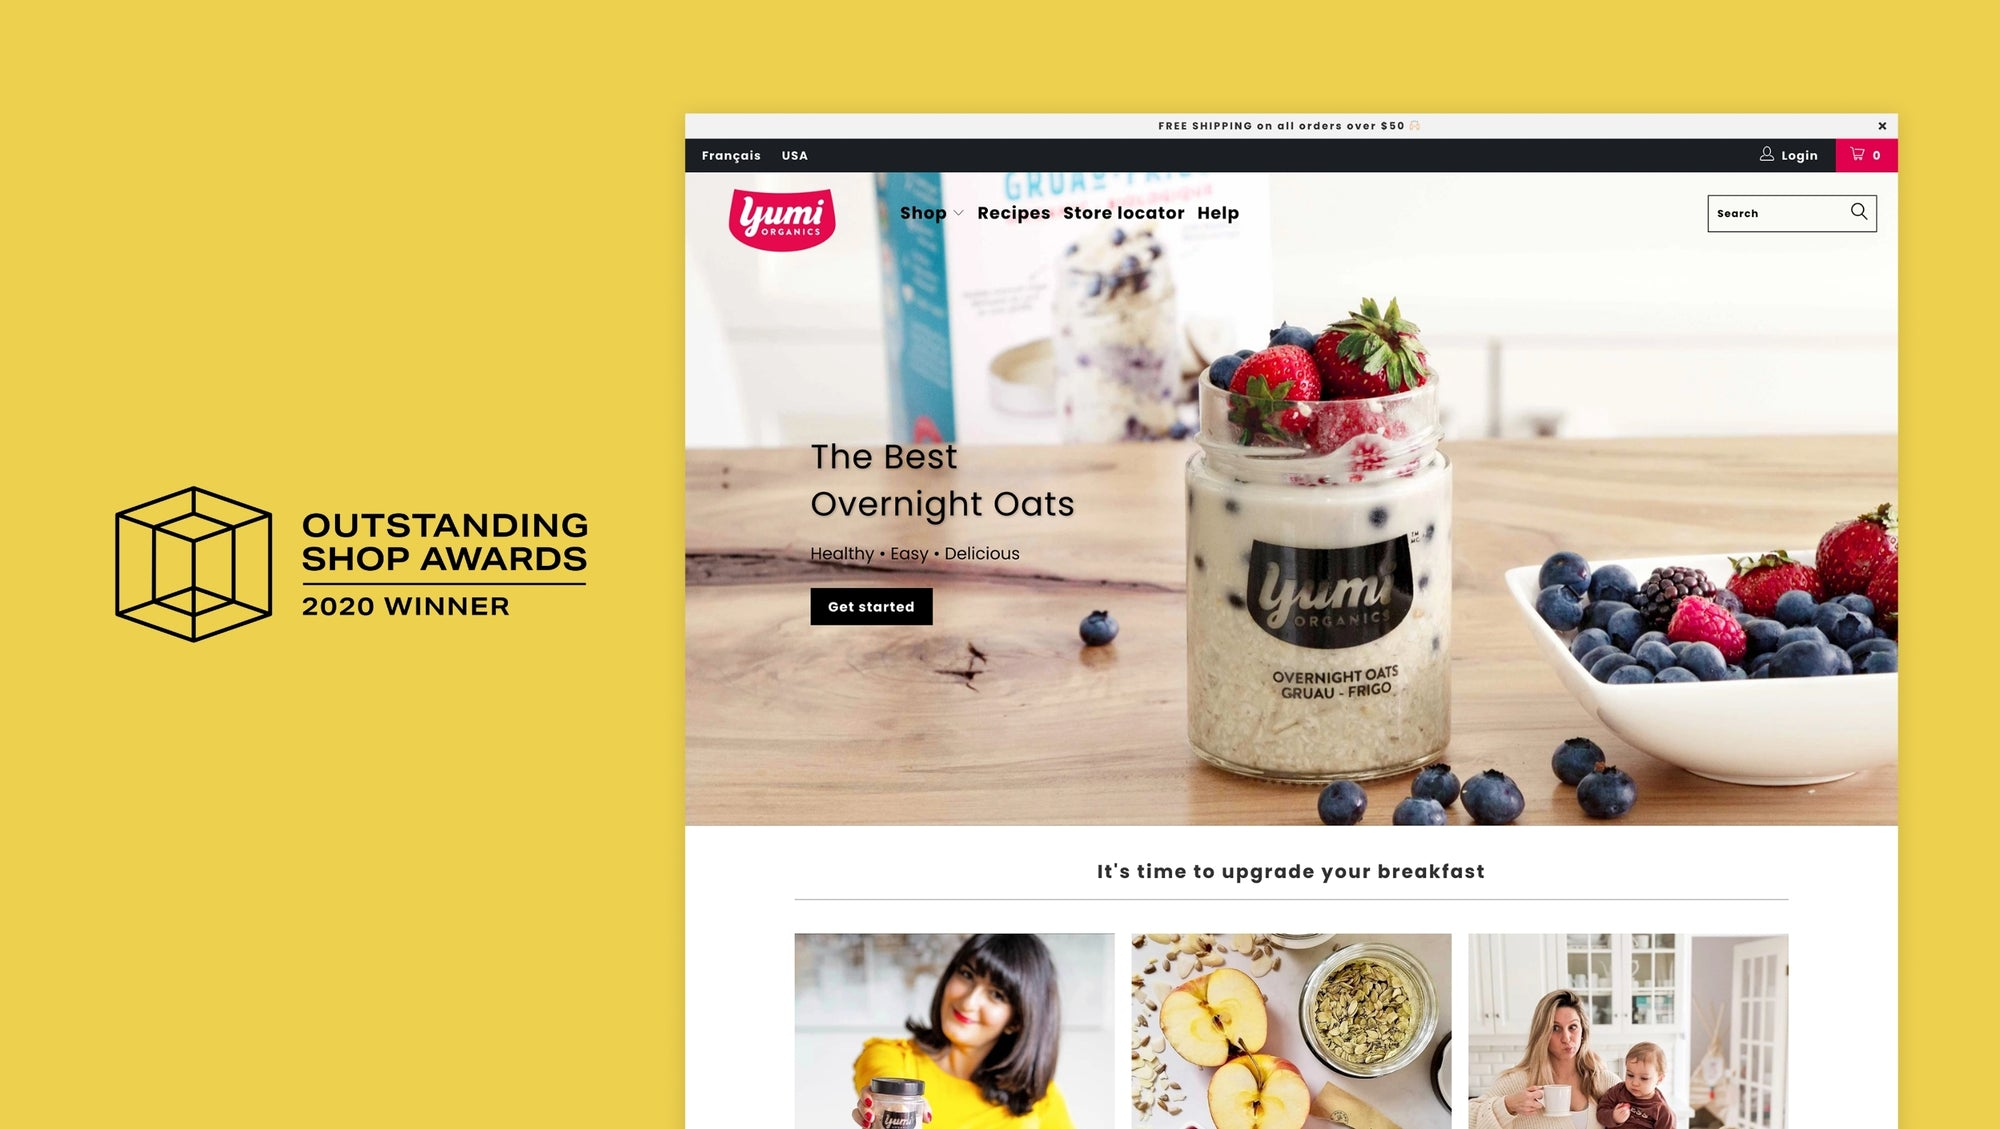 Yumi Organics: Winners of the Outstanding Shop Award for best food and drink online store